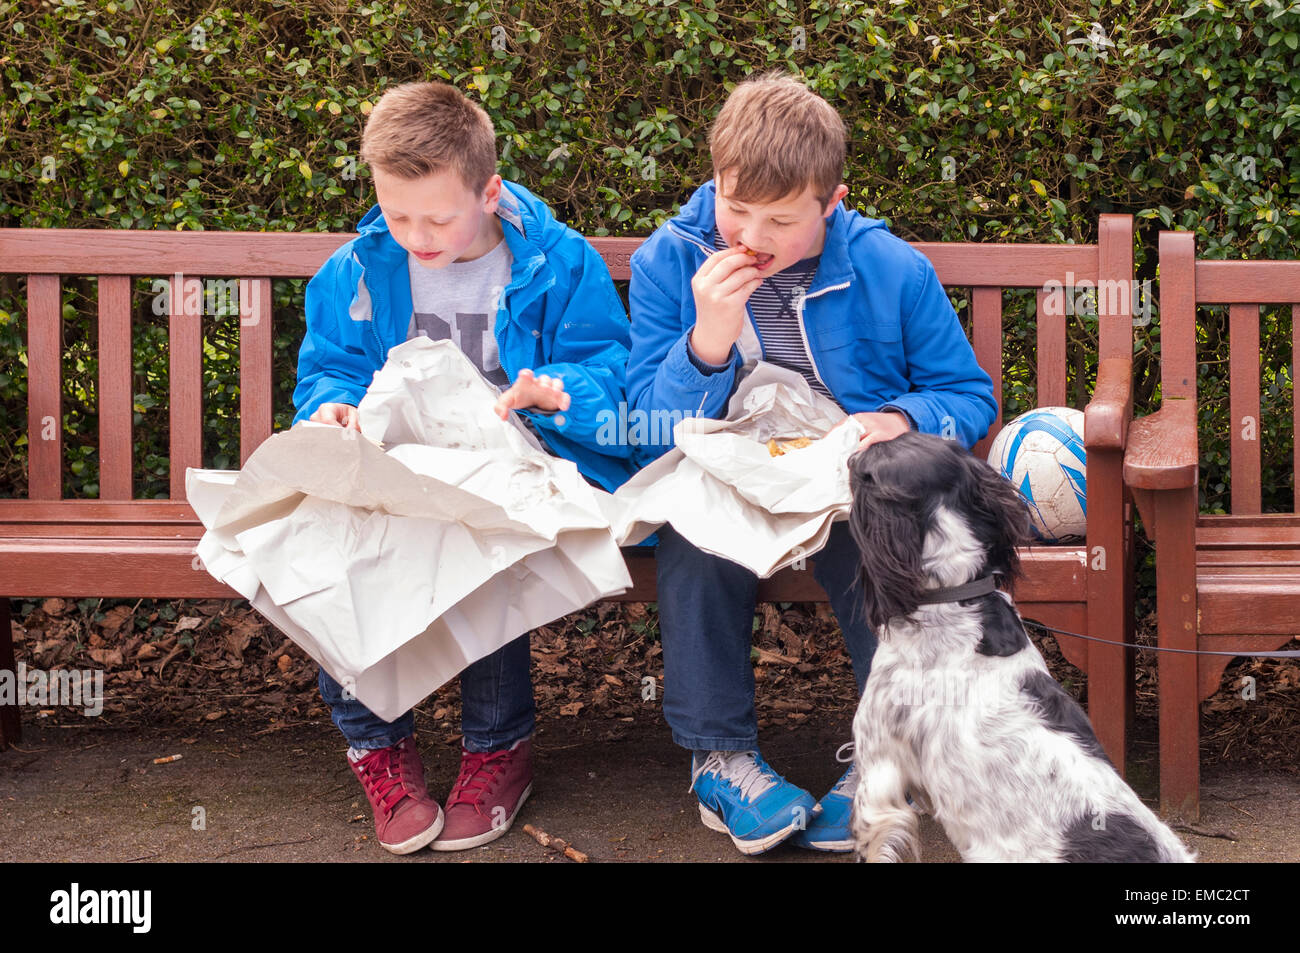 Two boys eating fish & chips on a park bench in the Uk - Stock Image